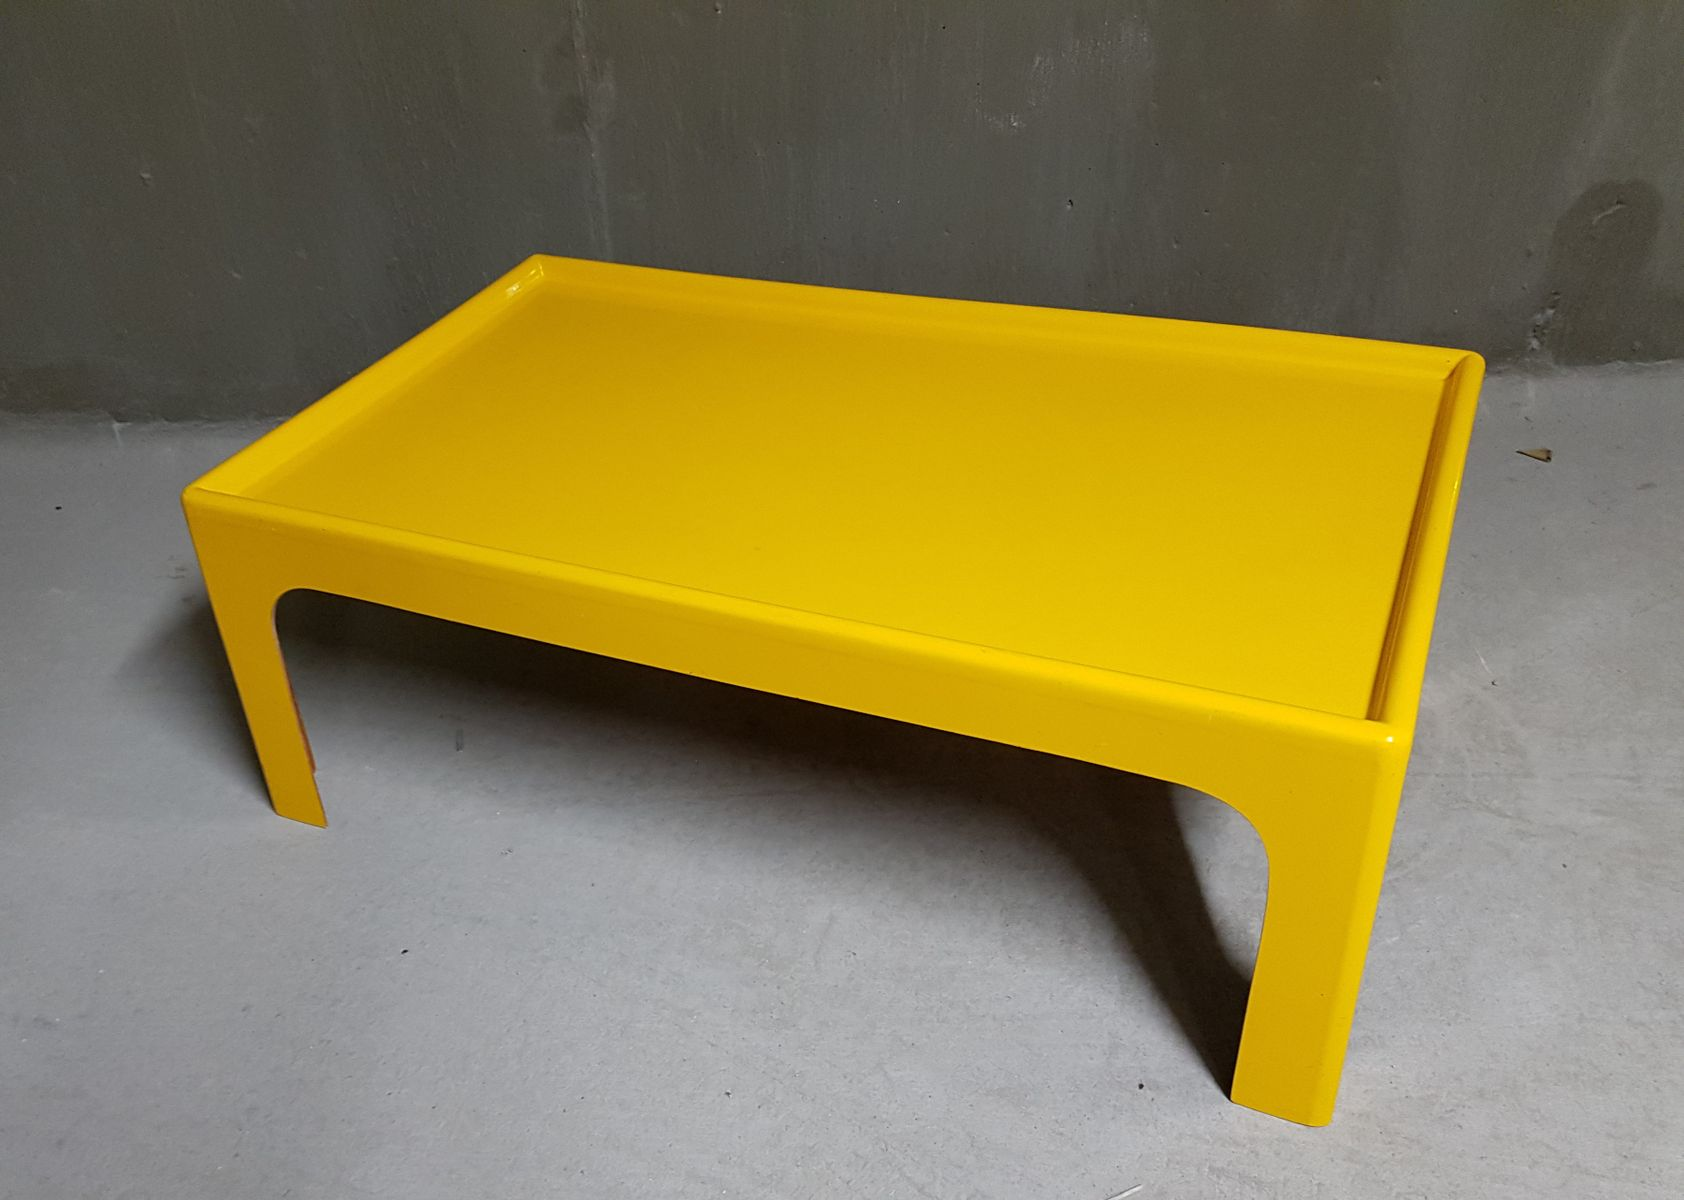 Vintage yellow fiberglass coffee table by marc held for sale at pamono vintage yellow fiberglass coffee table by marc held geotapseo Choice Image